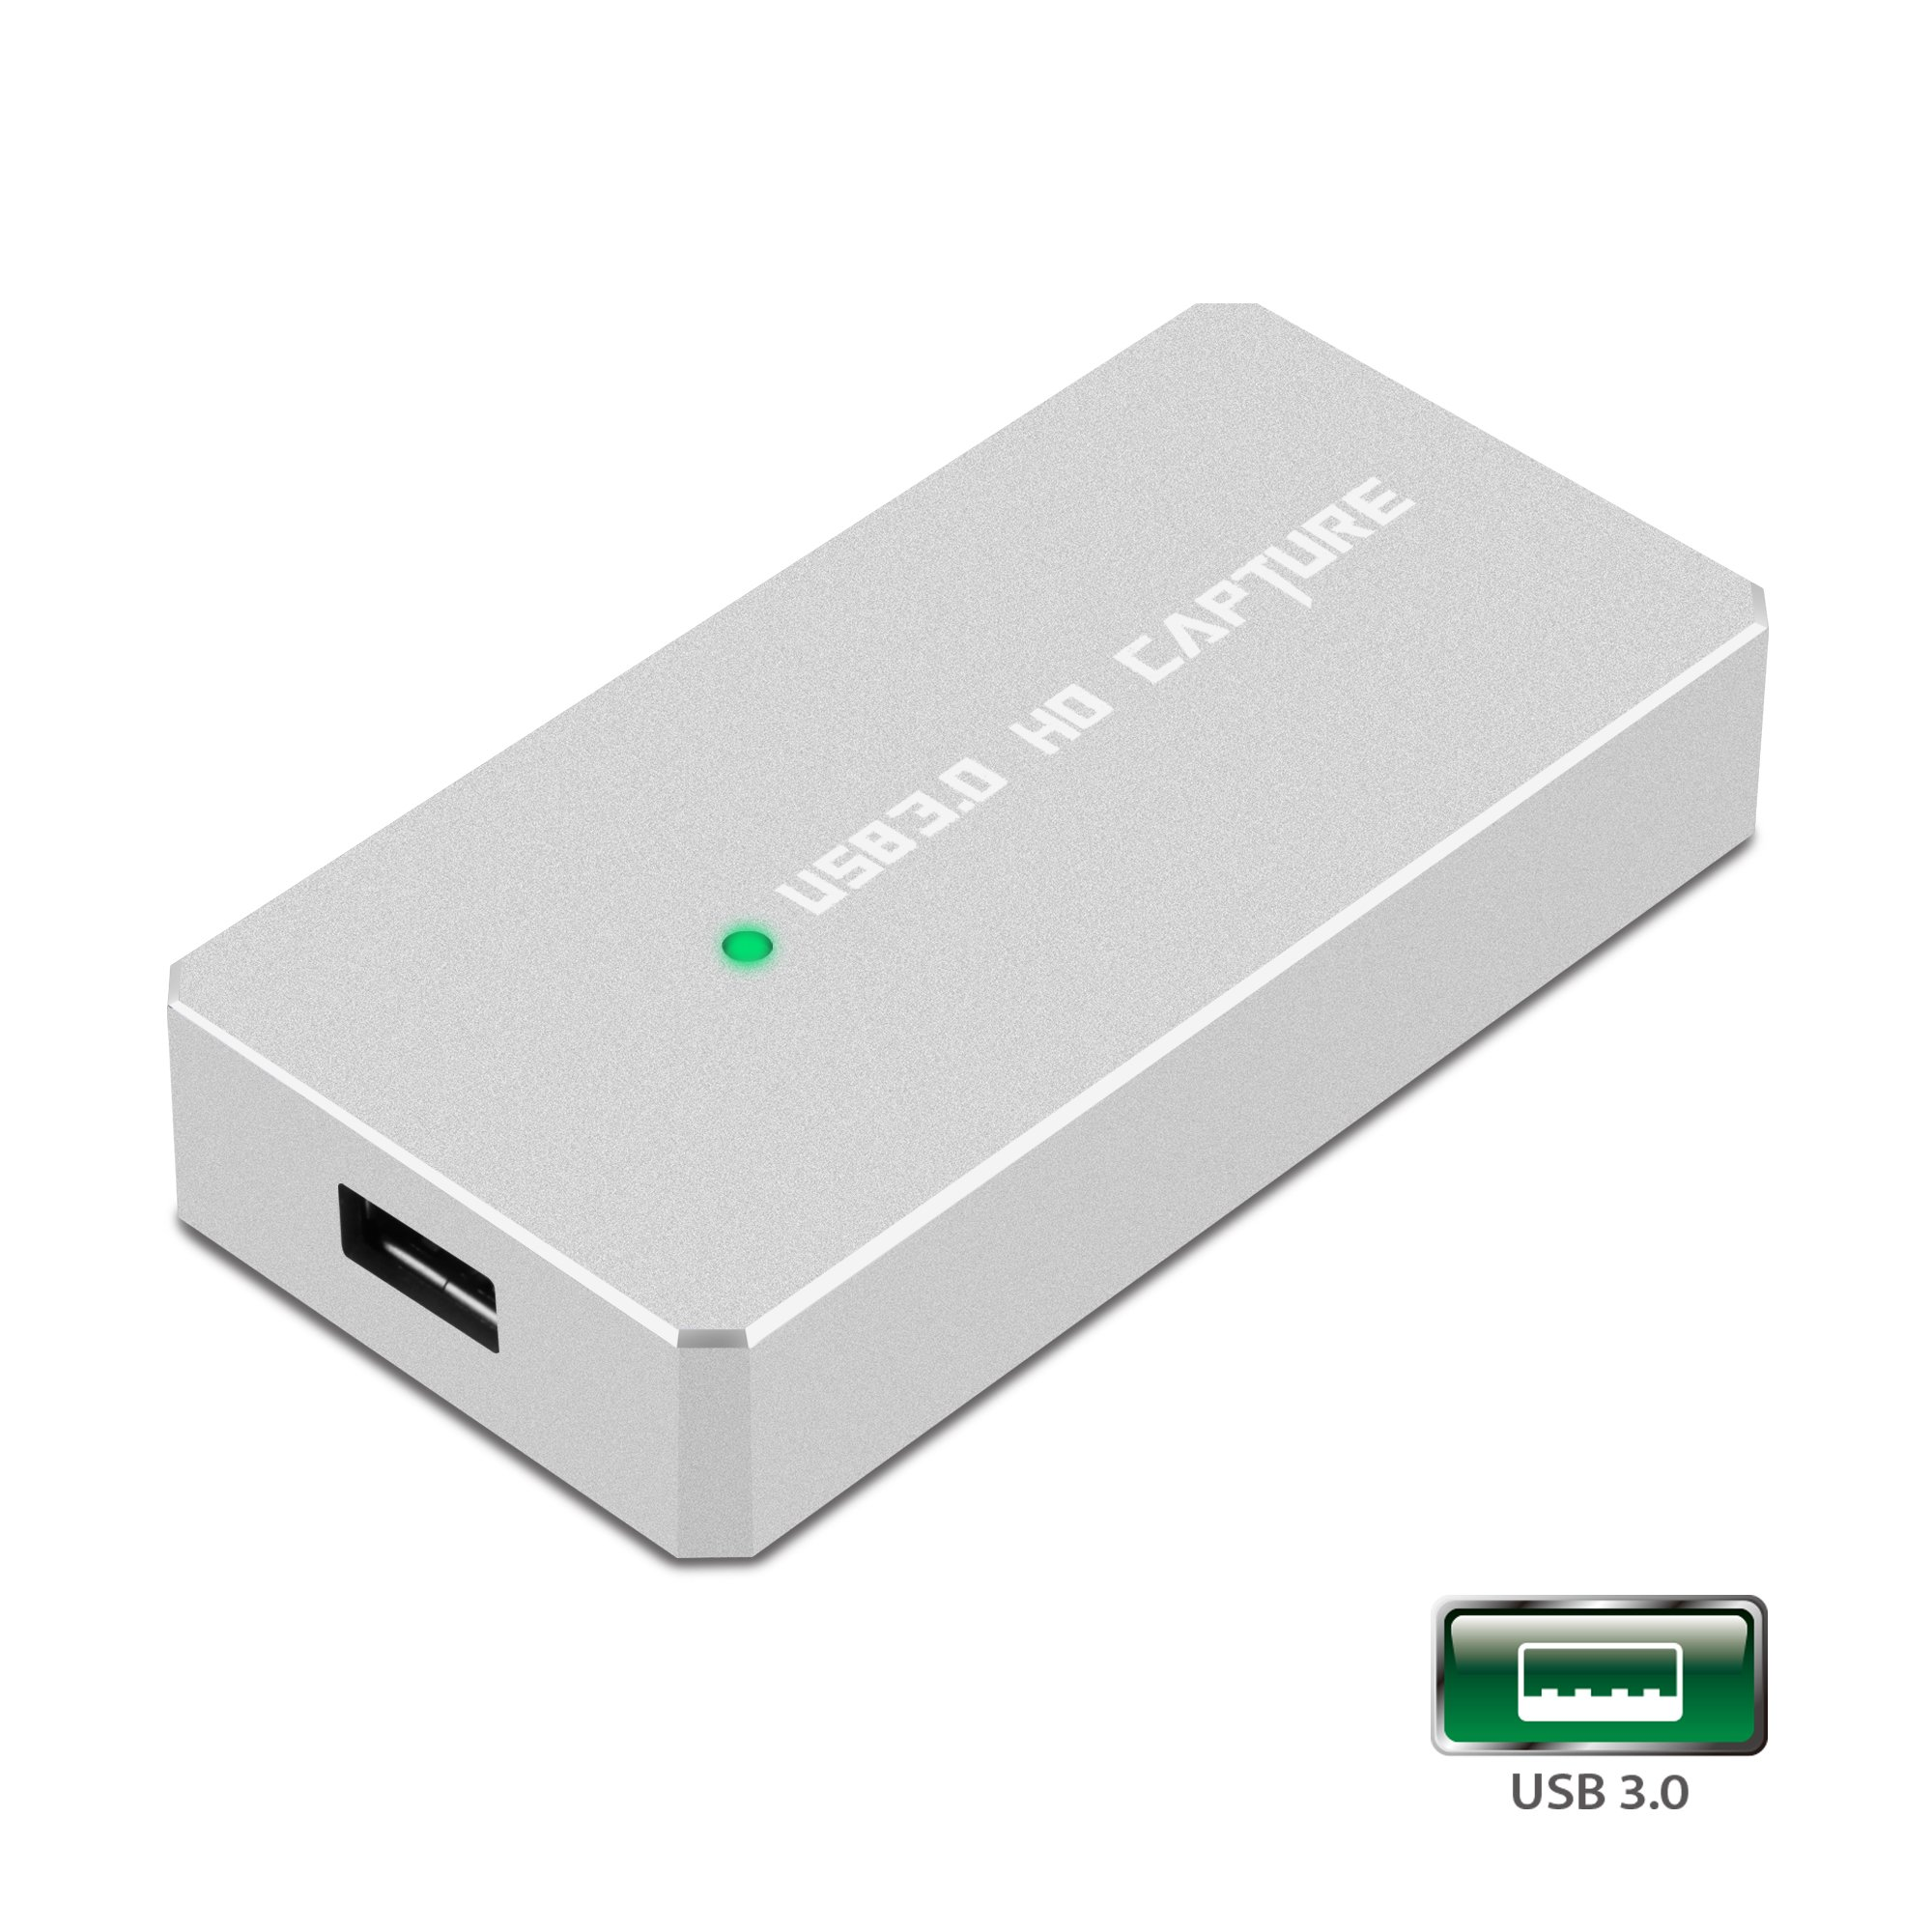 SIIG USB 3.0 HDMI Capture Adapter by SIIG (Image #2)